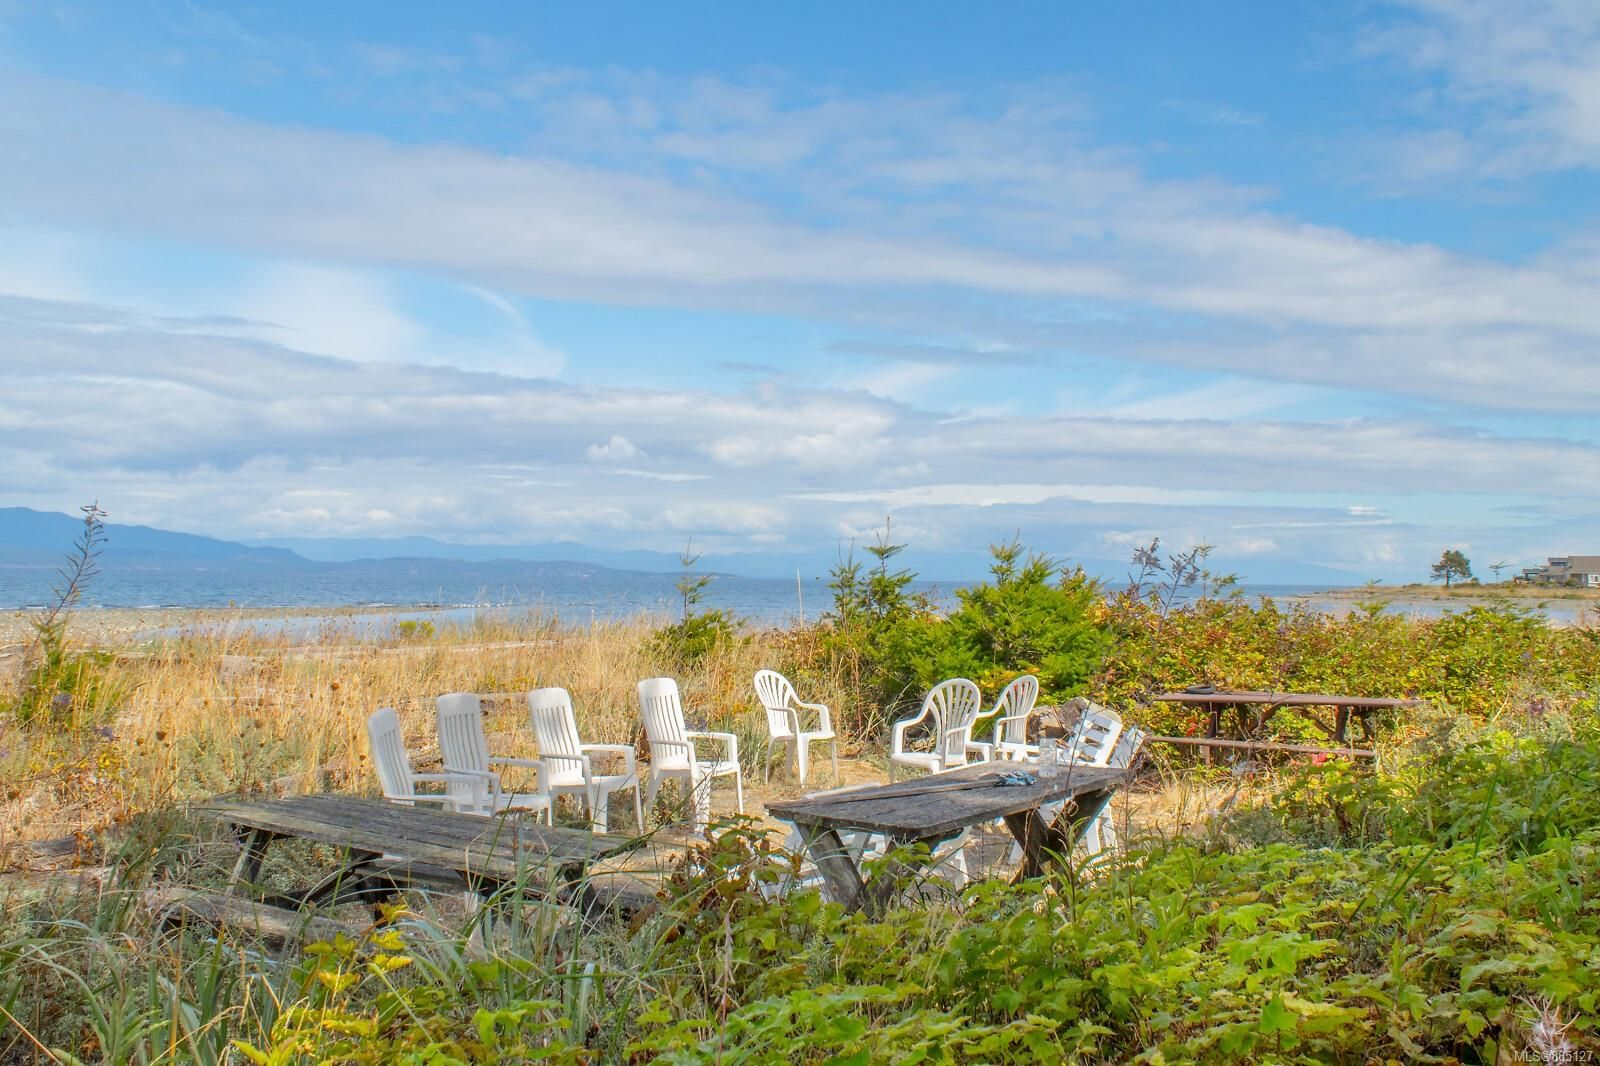 Photo 53: Photos: 26 529 Johnstone Rd in : PQ French Creek Row/Townhouse for sale (Parksville/Qualicum)  : MLS®# 885127